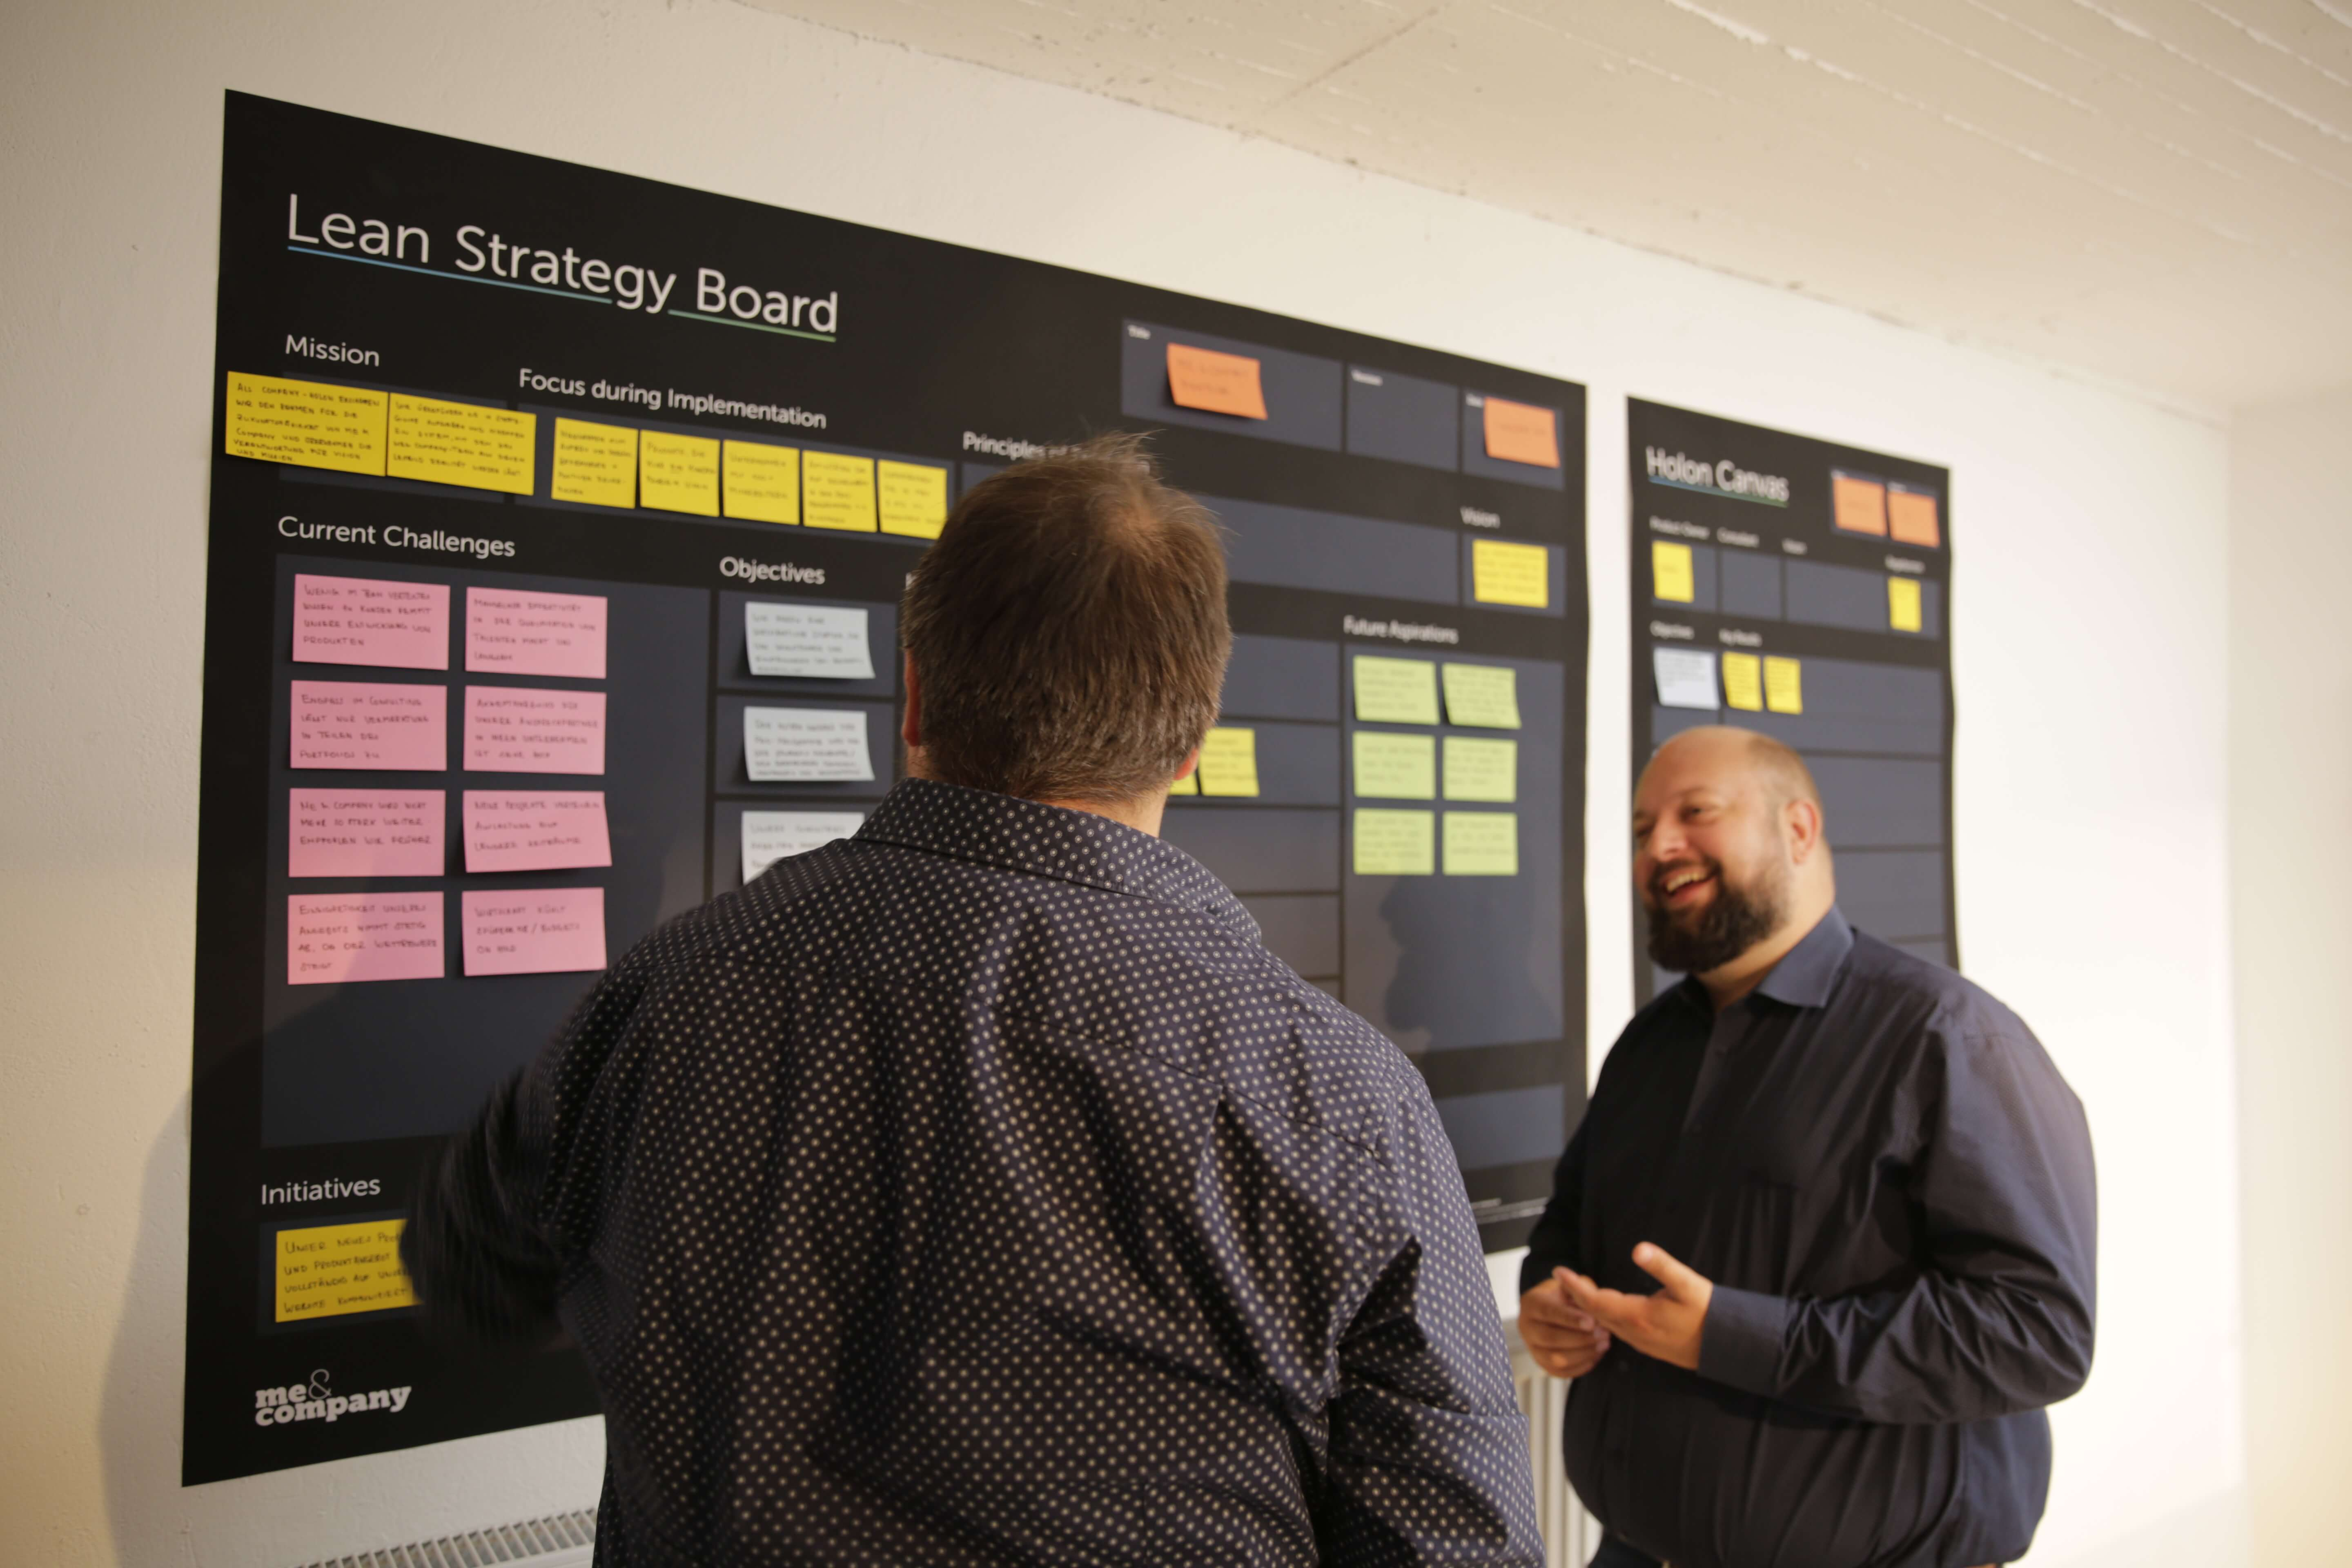 Lean Strategy Board: Führungsmethode zur Definition von Rahmenbedingungen in agilen Teams